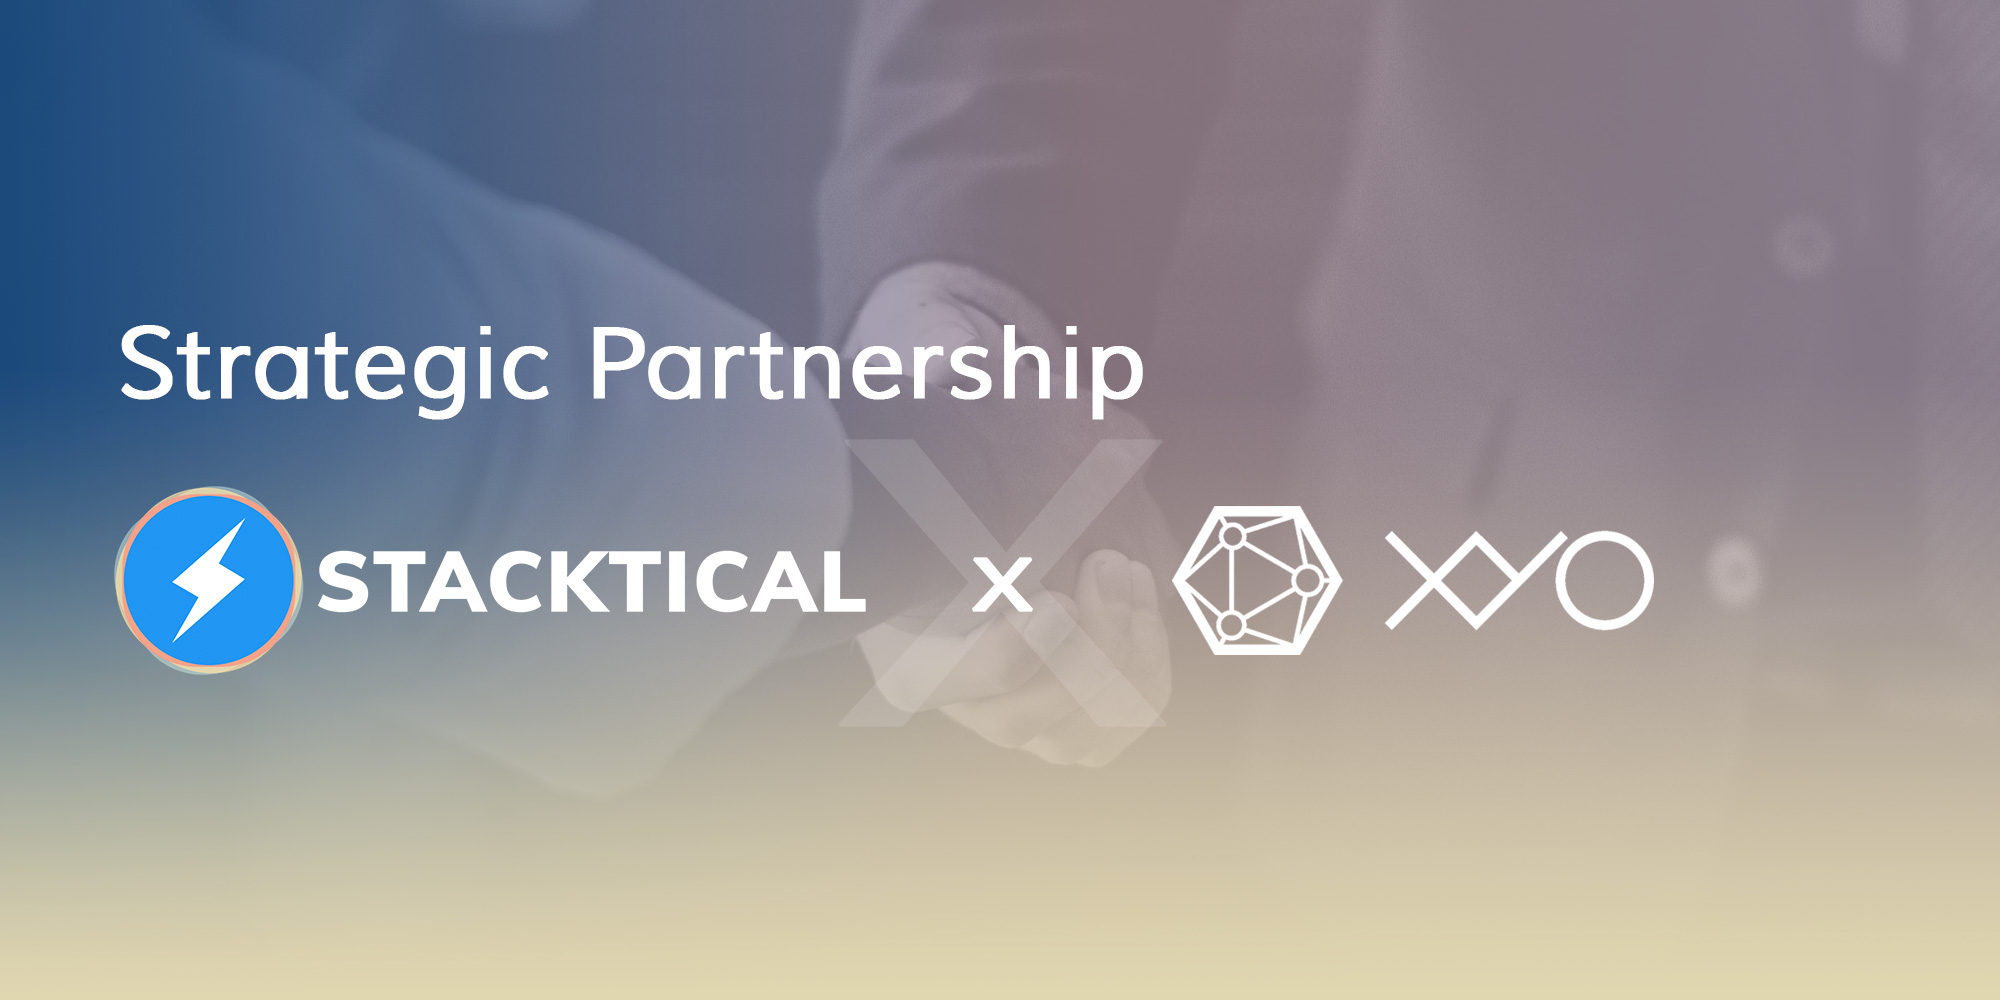 New Partnership Announcement — Stacktical (DSLA) x XYO Network (XYO)